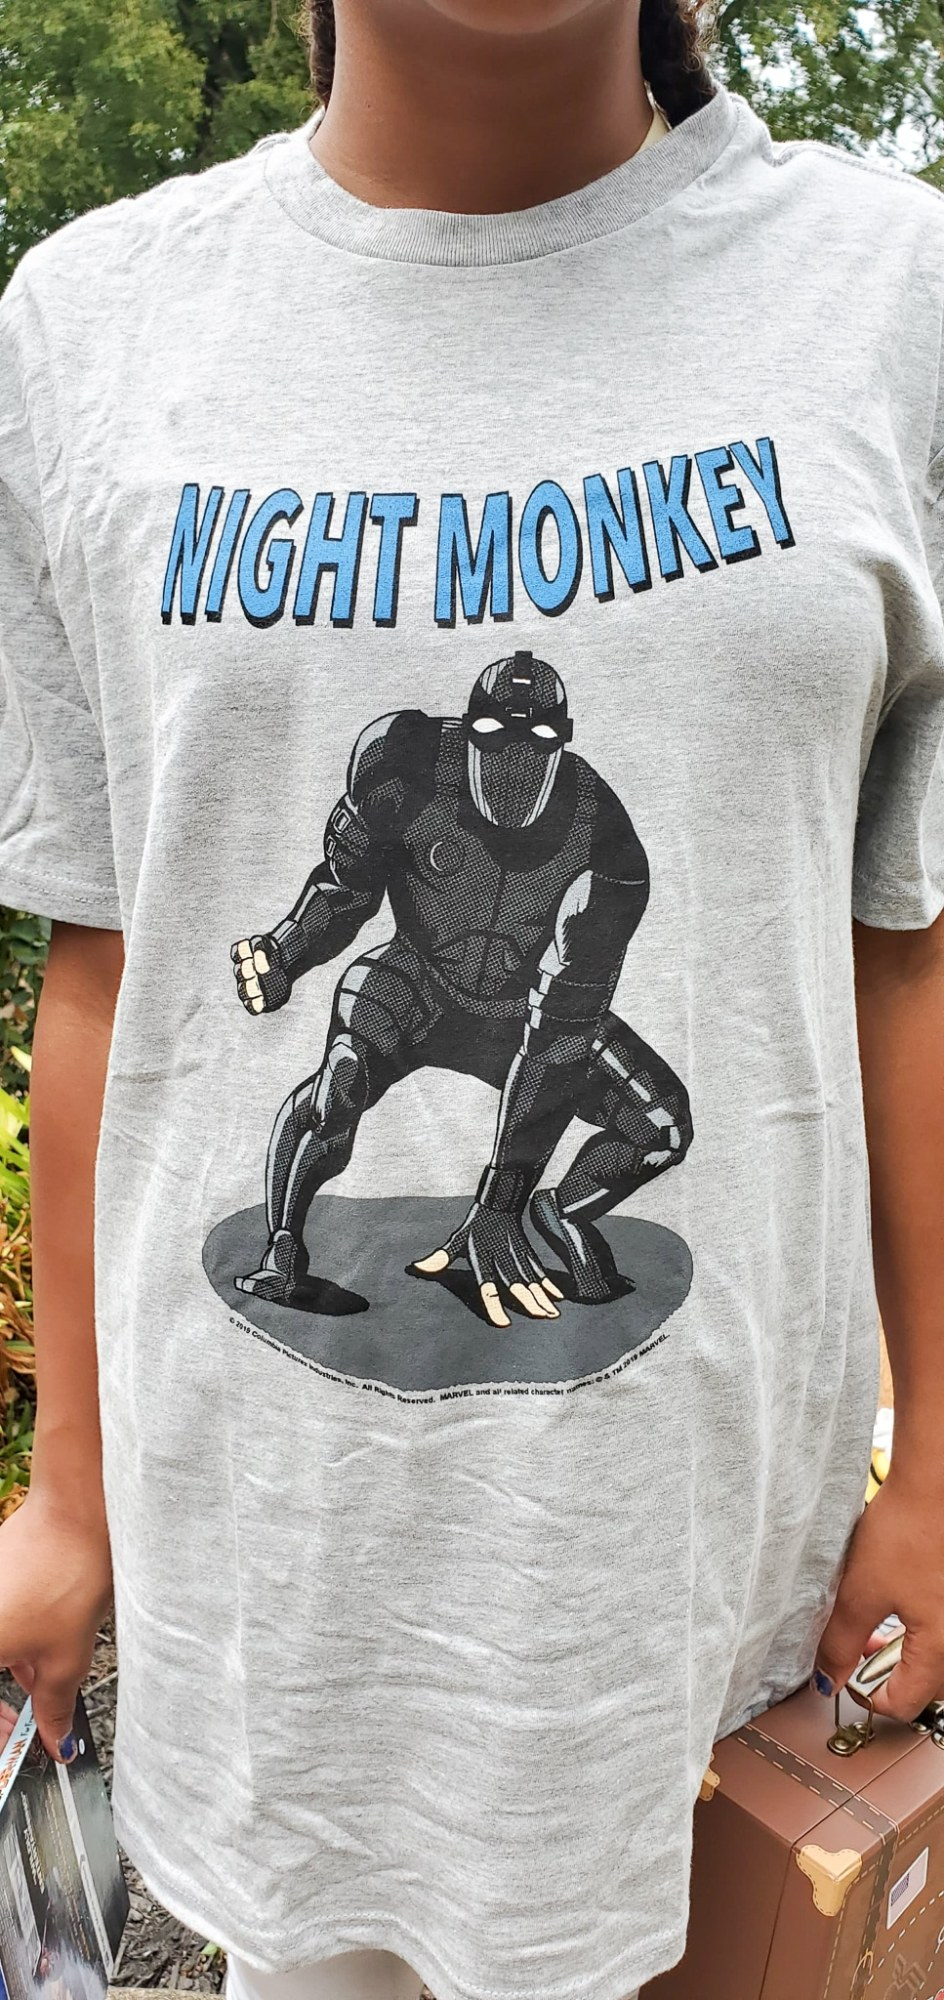 Night Monkey Shirt. Tom Holland returns as everyone's favorite web-slinger in SPIDER-MAN: FAR FROM HOME, the next chapter after Spider-Man: Homecoming.